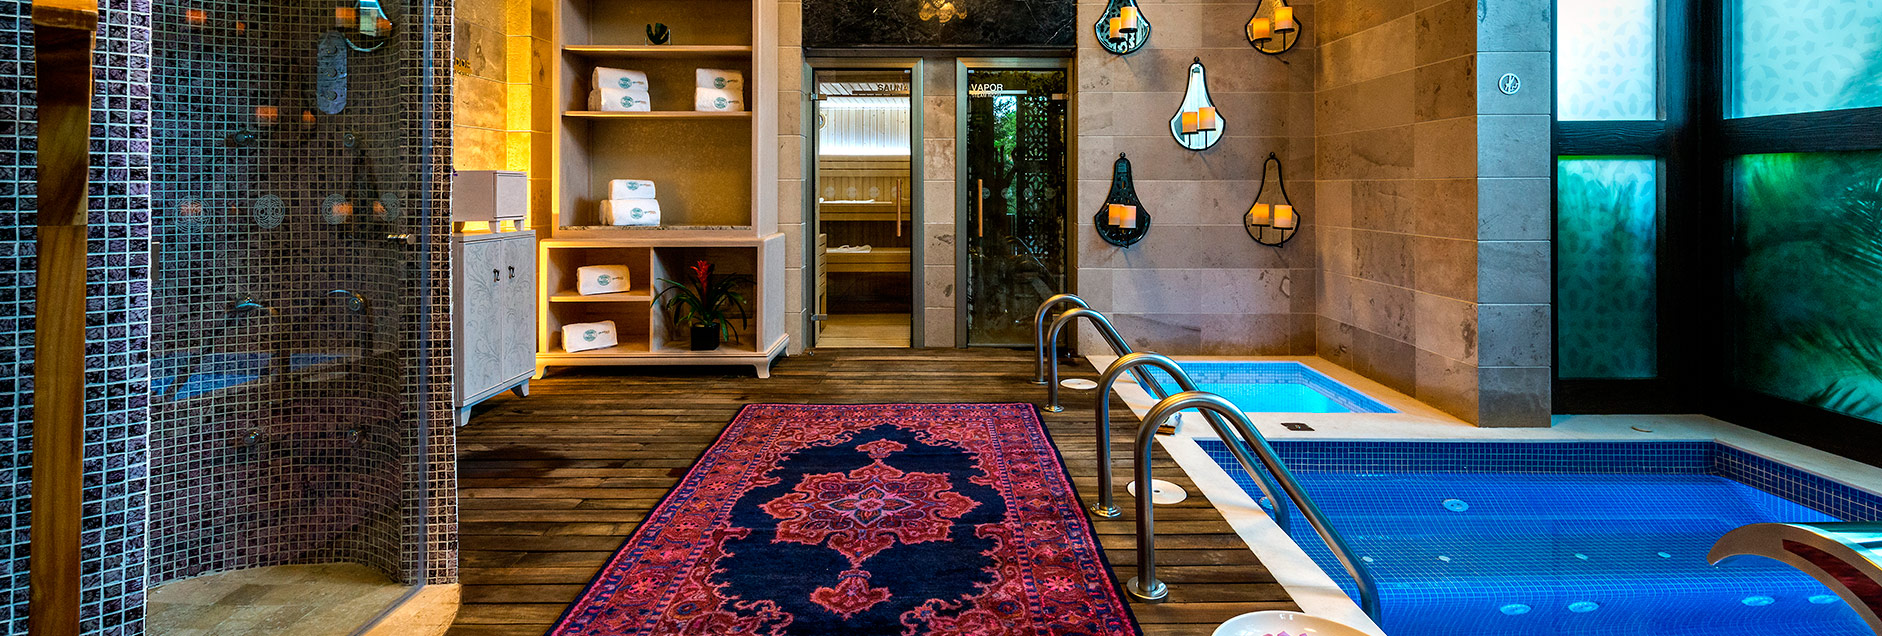 Renew your spirit and revitalize your senses at the Brio Spa - Just one of the spa rooms you can enjoy at your Mermaids Journey Retreat